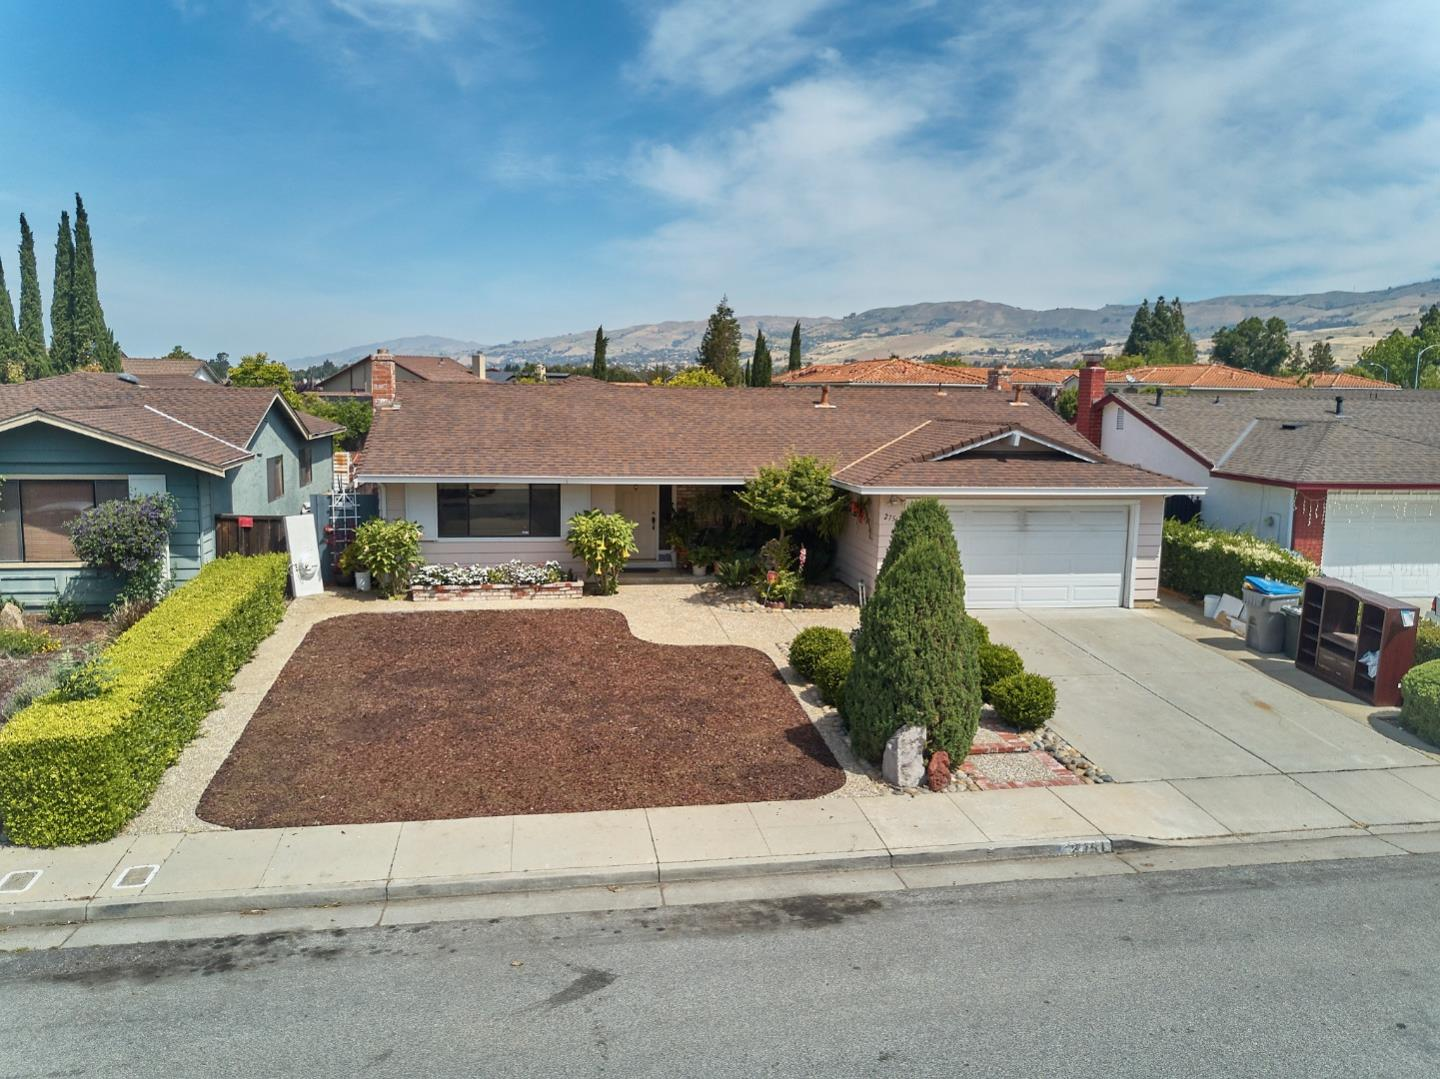 2751 Britt CT, Evergreen in Santa Clara County, CA 95148 Home for Sale